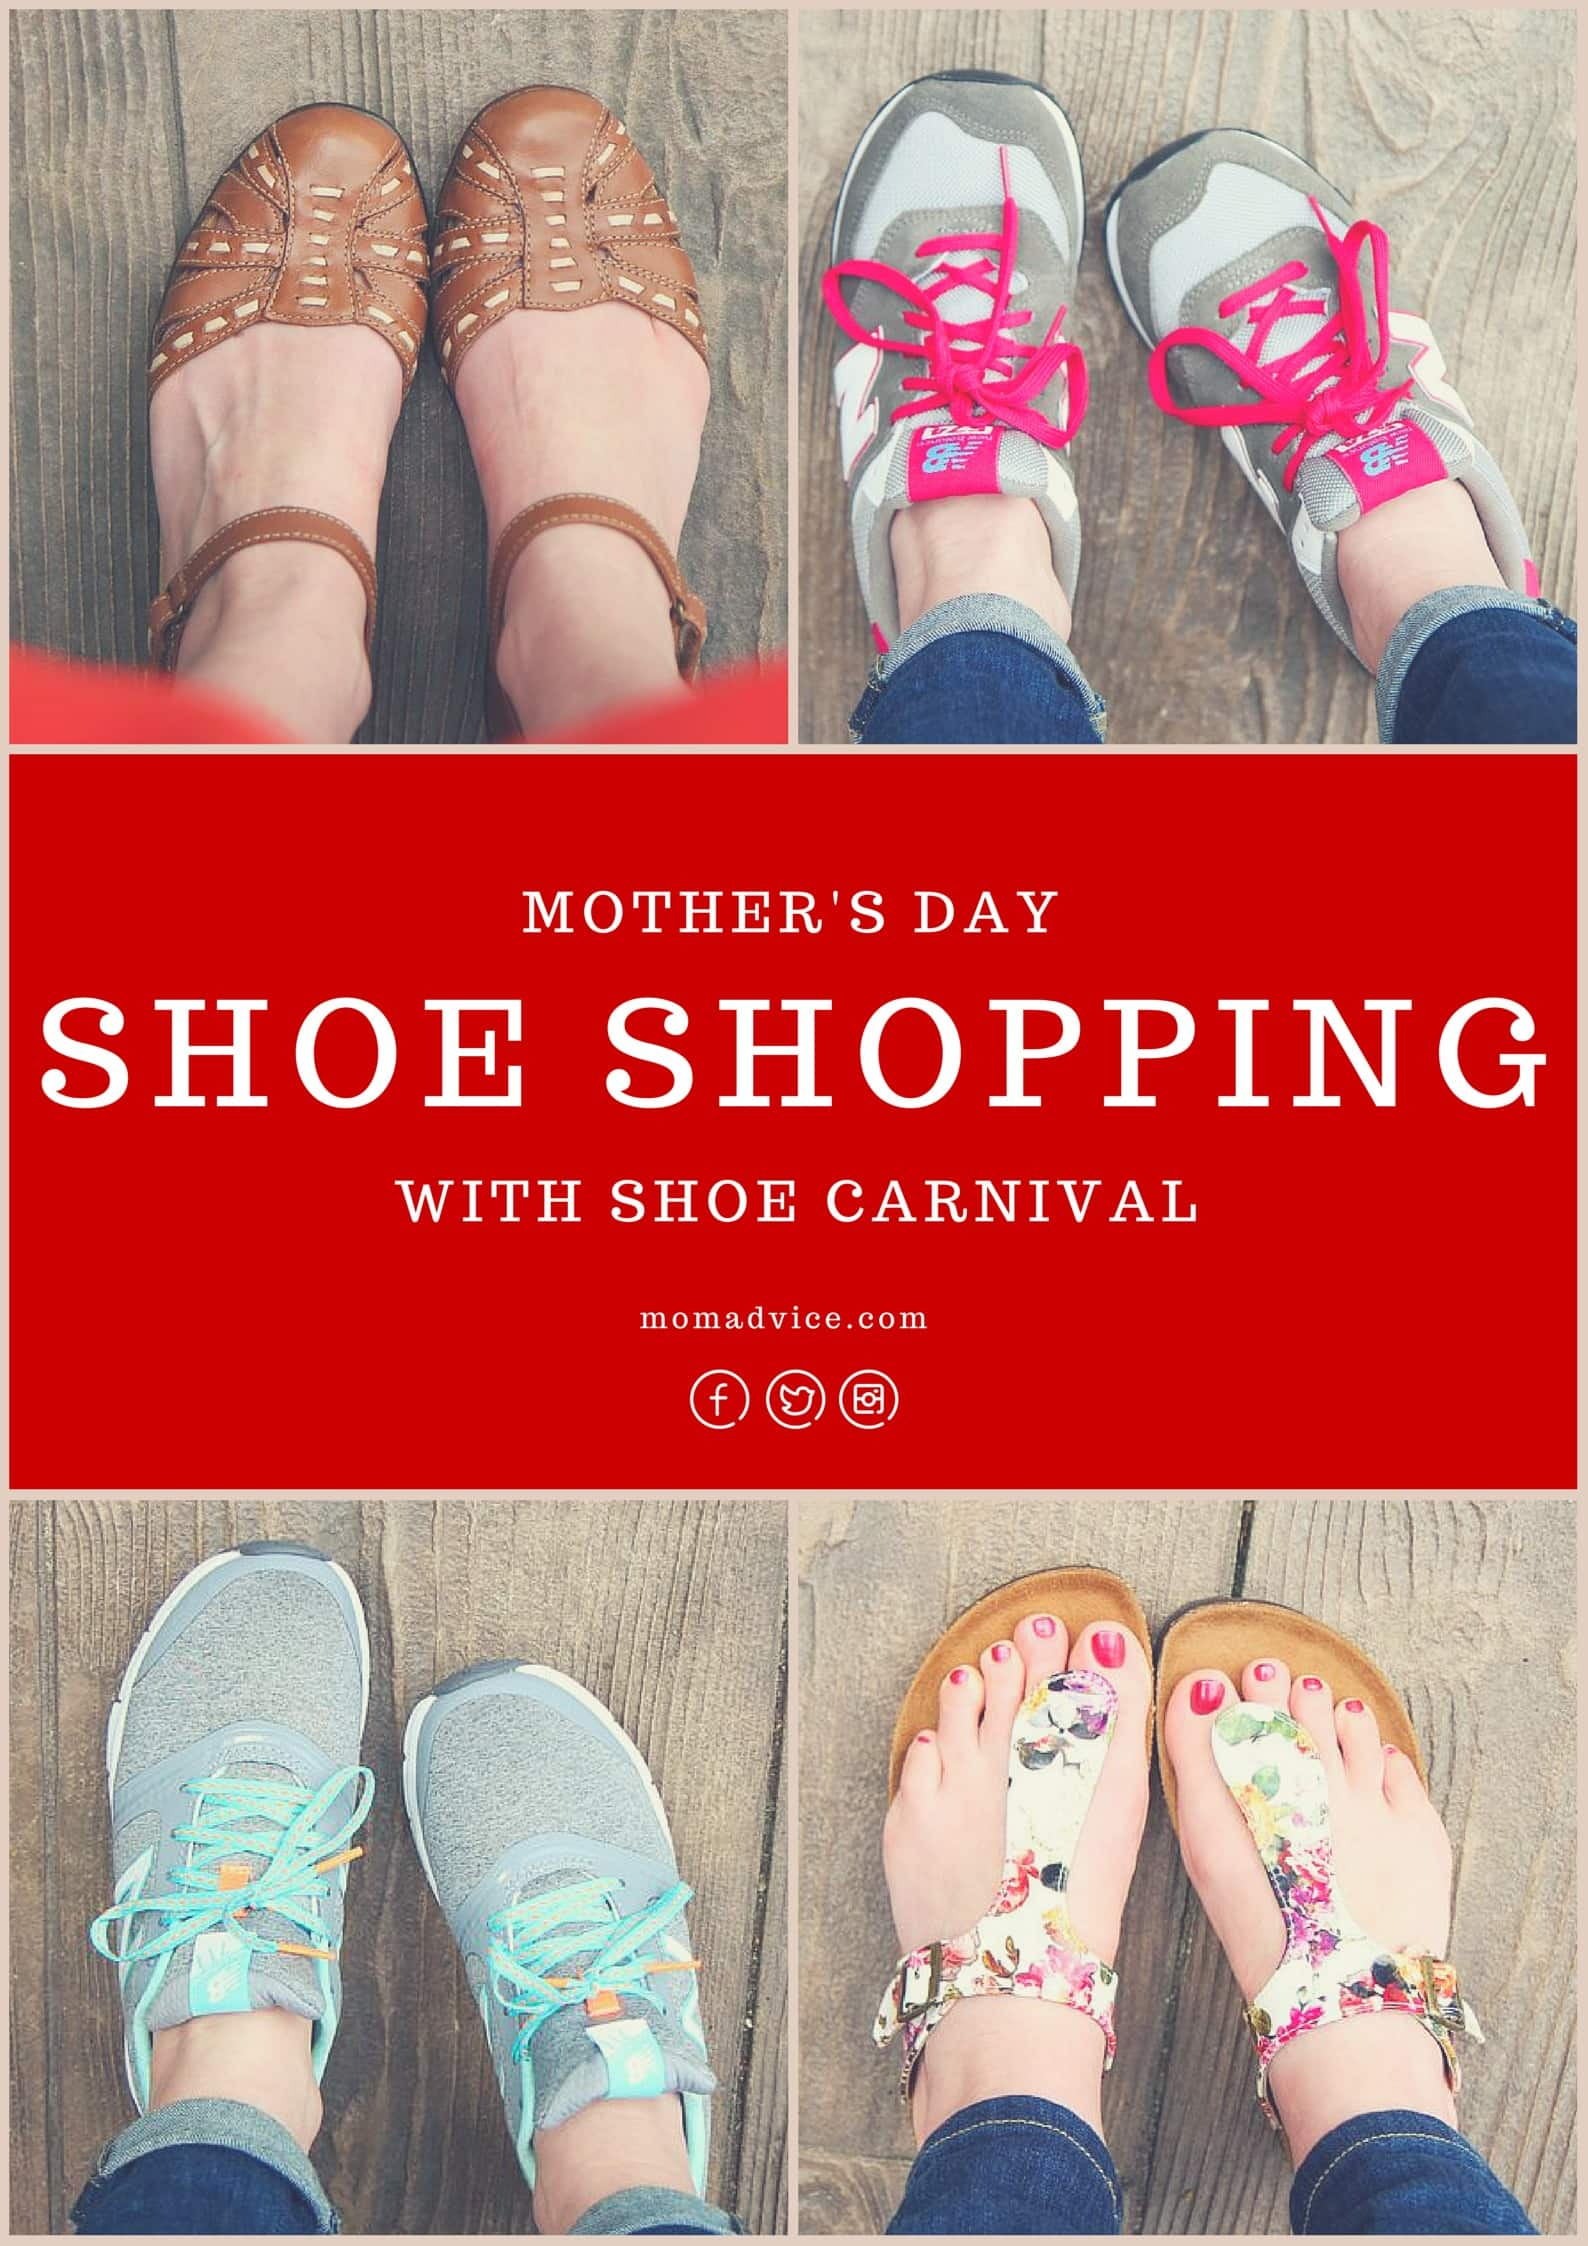 Mother's Day Shoe Shopping With Shoe Carnival